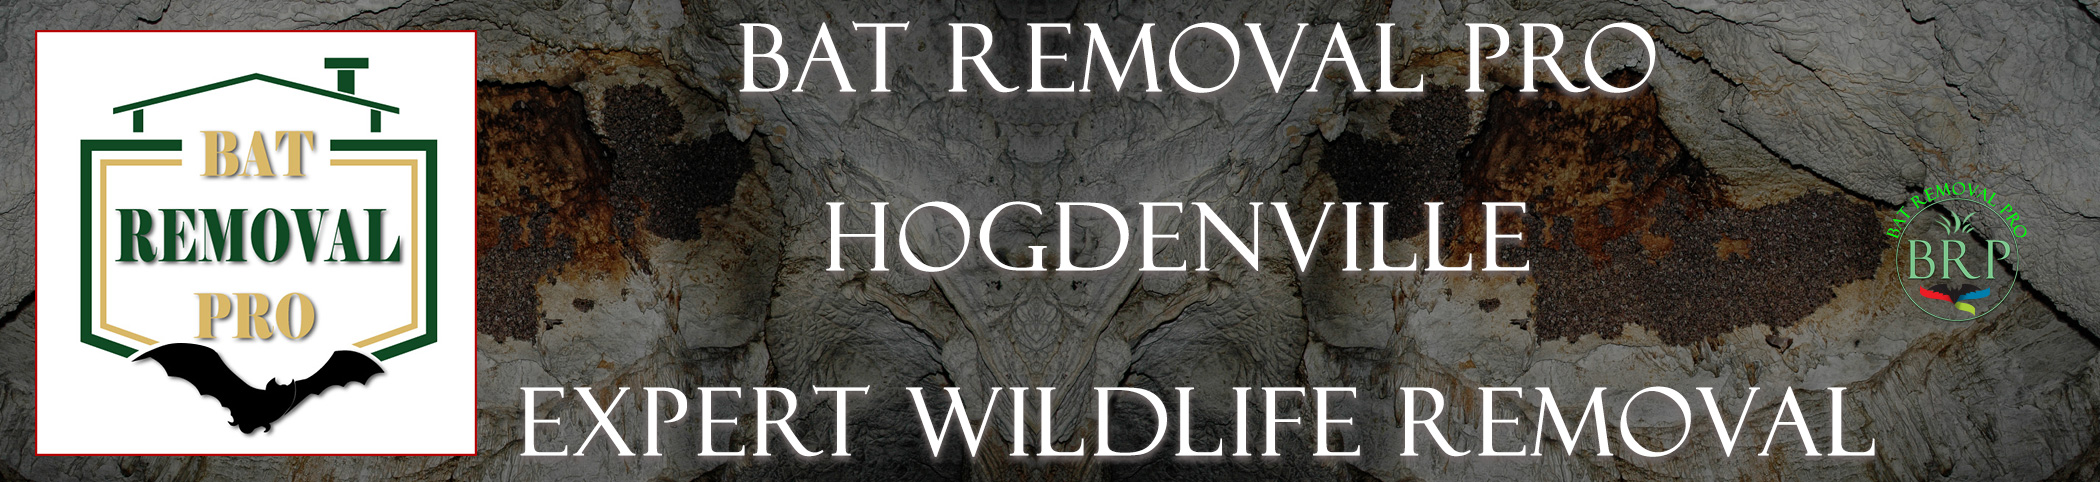 HOGDENVILLE-bat-removal-at-bat-removal-pro-header-image